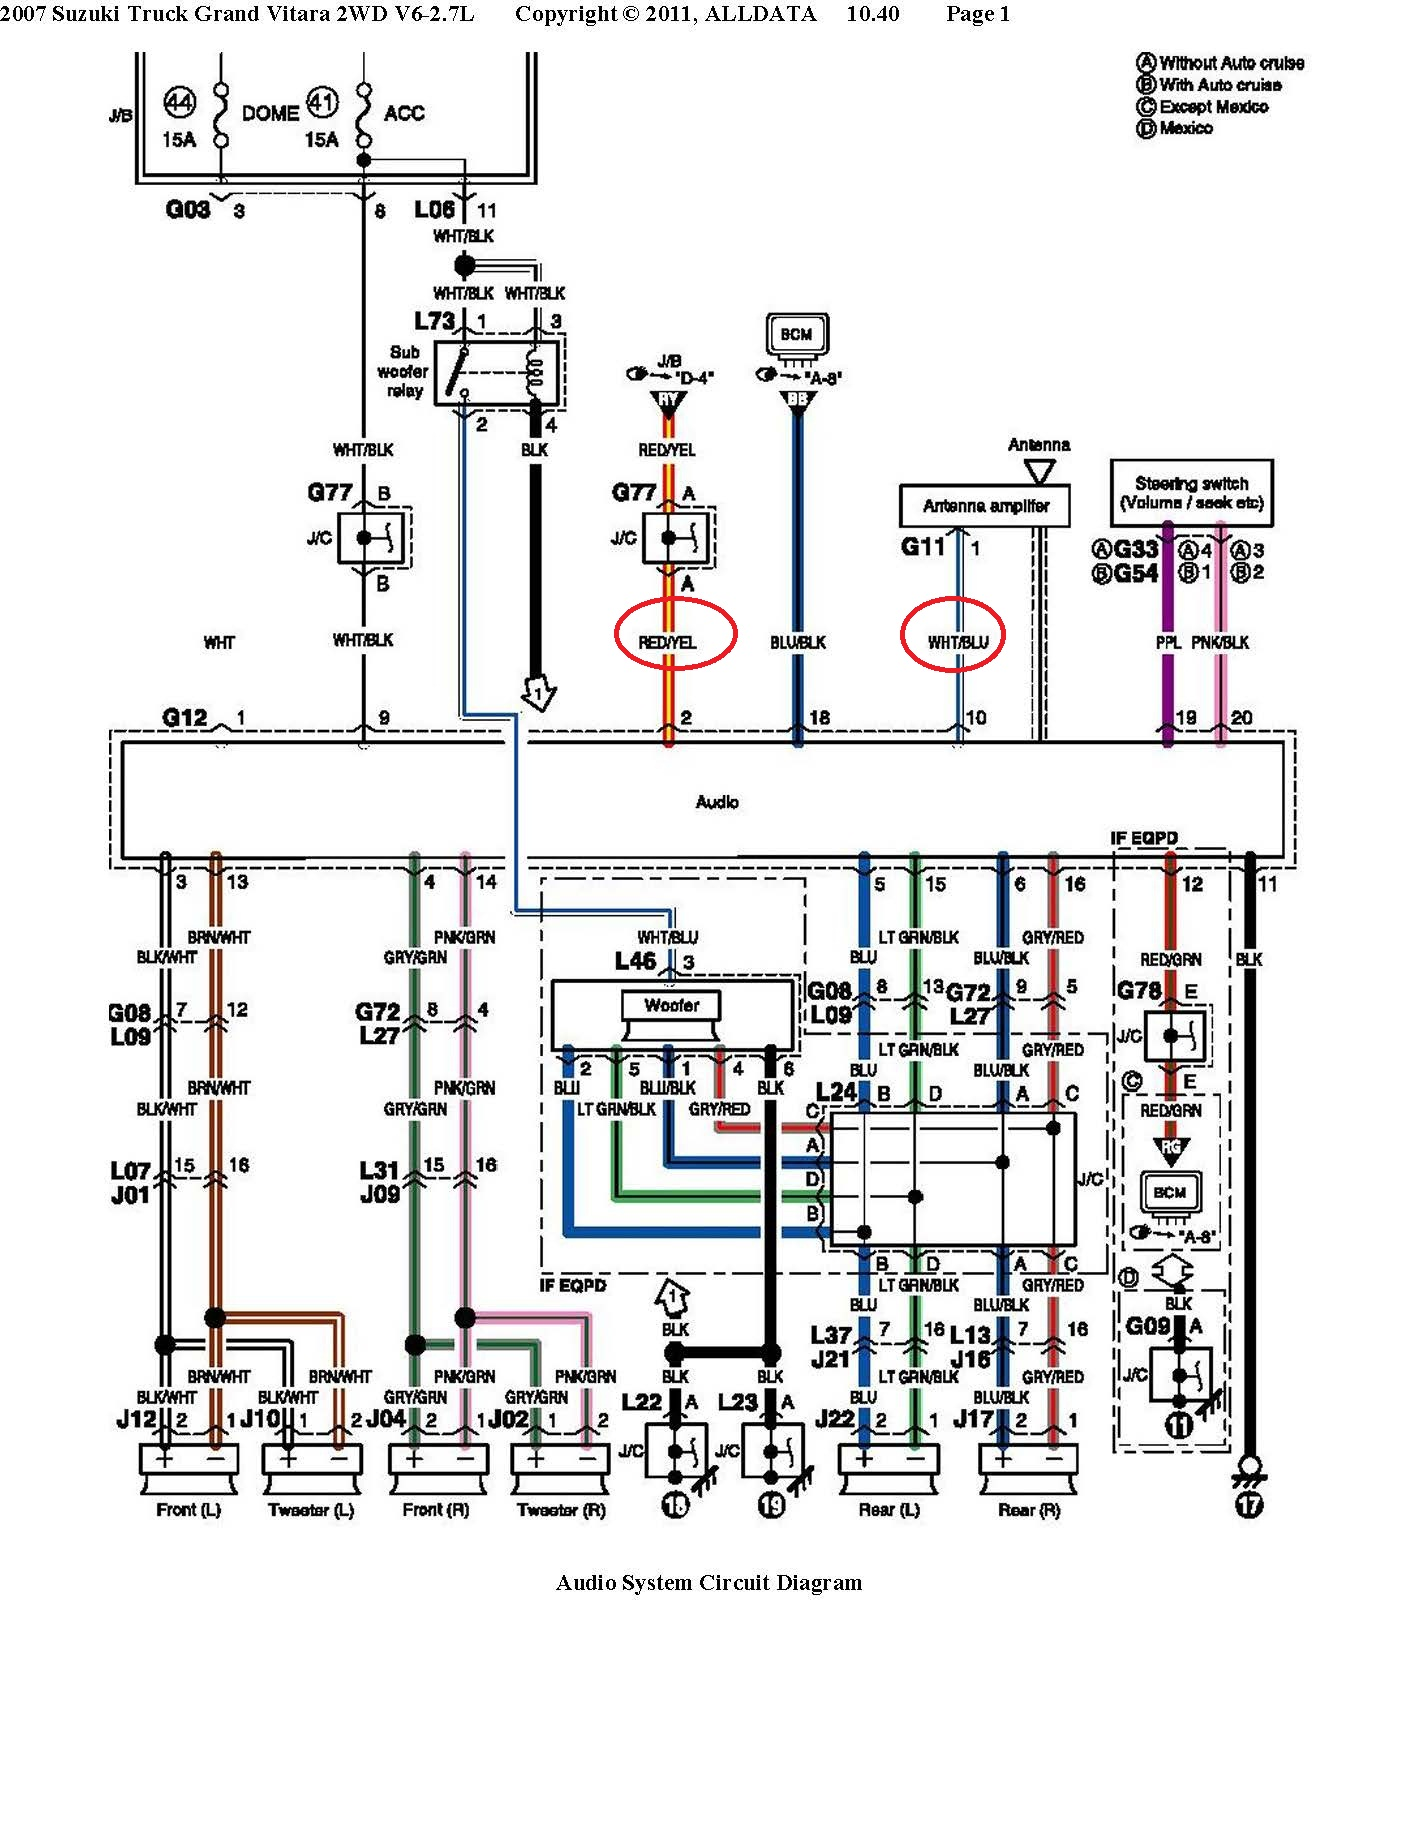 Suzuki Car Radio Stereo Audio Wiring Diagram Autoradio Connector Bazooka Harness Wire Installation Schematic Schema Esquema De Conexiones Stecker Konektor Connecteur Cable Shema Speaker Pinout Connectors Power